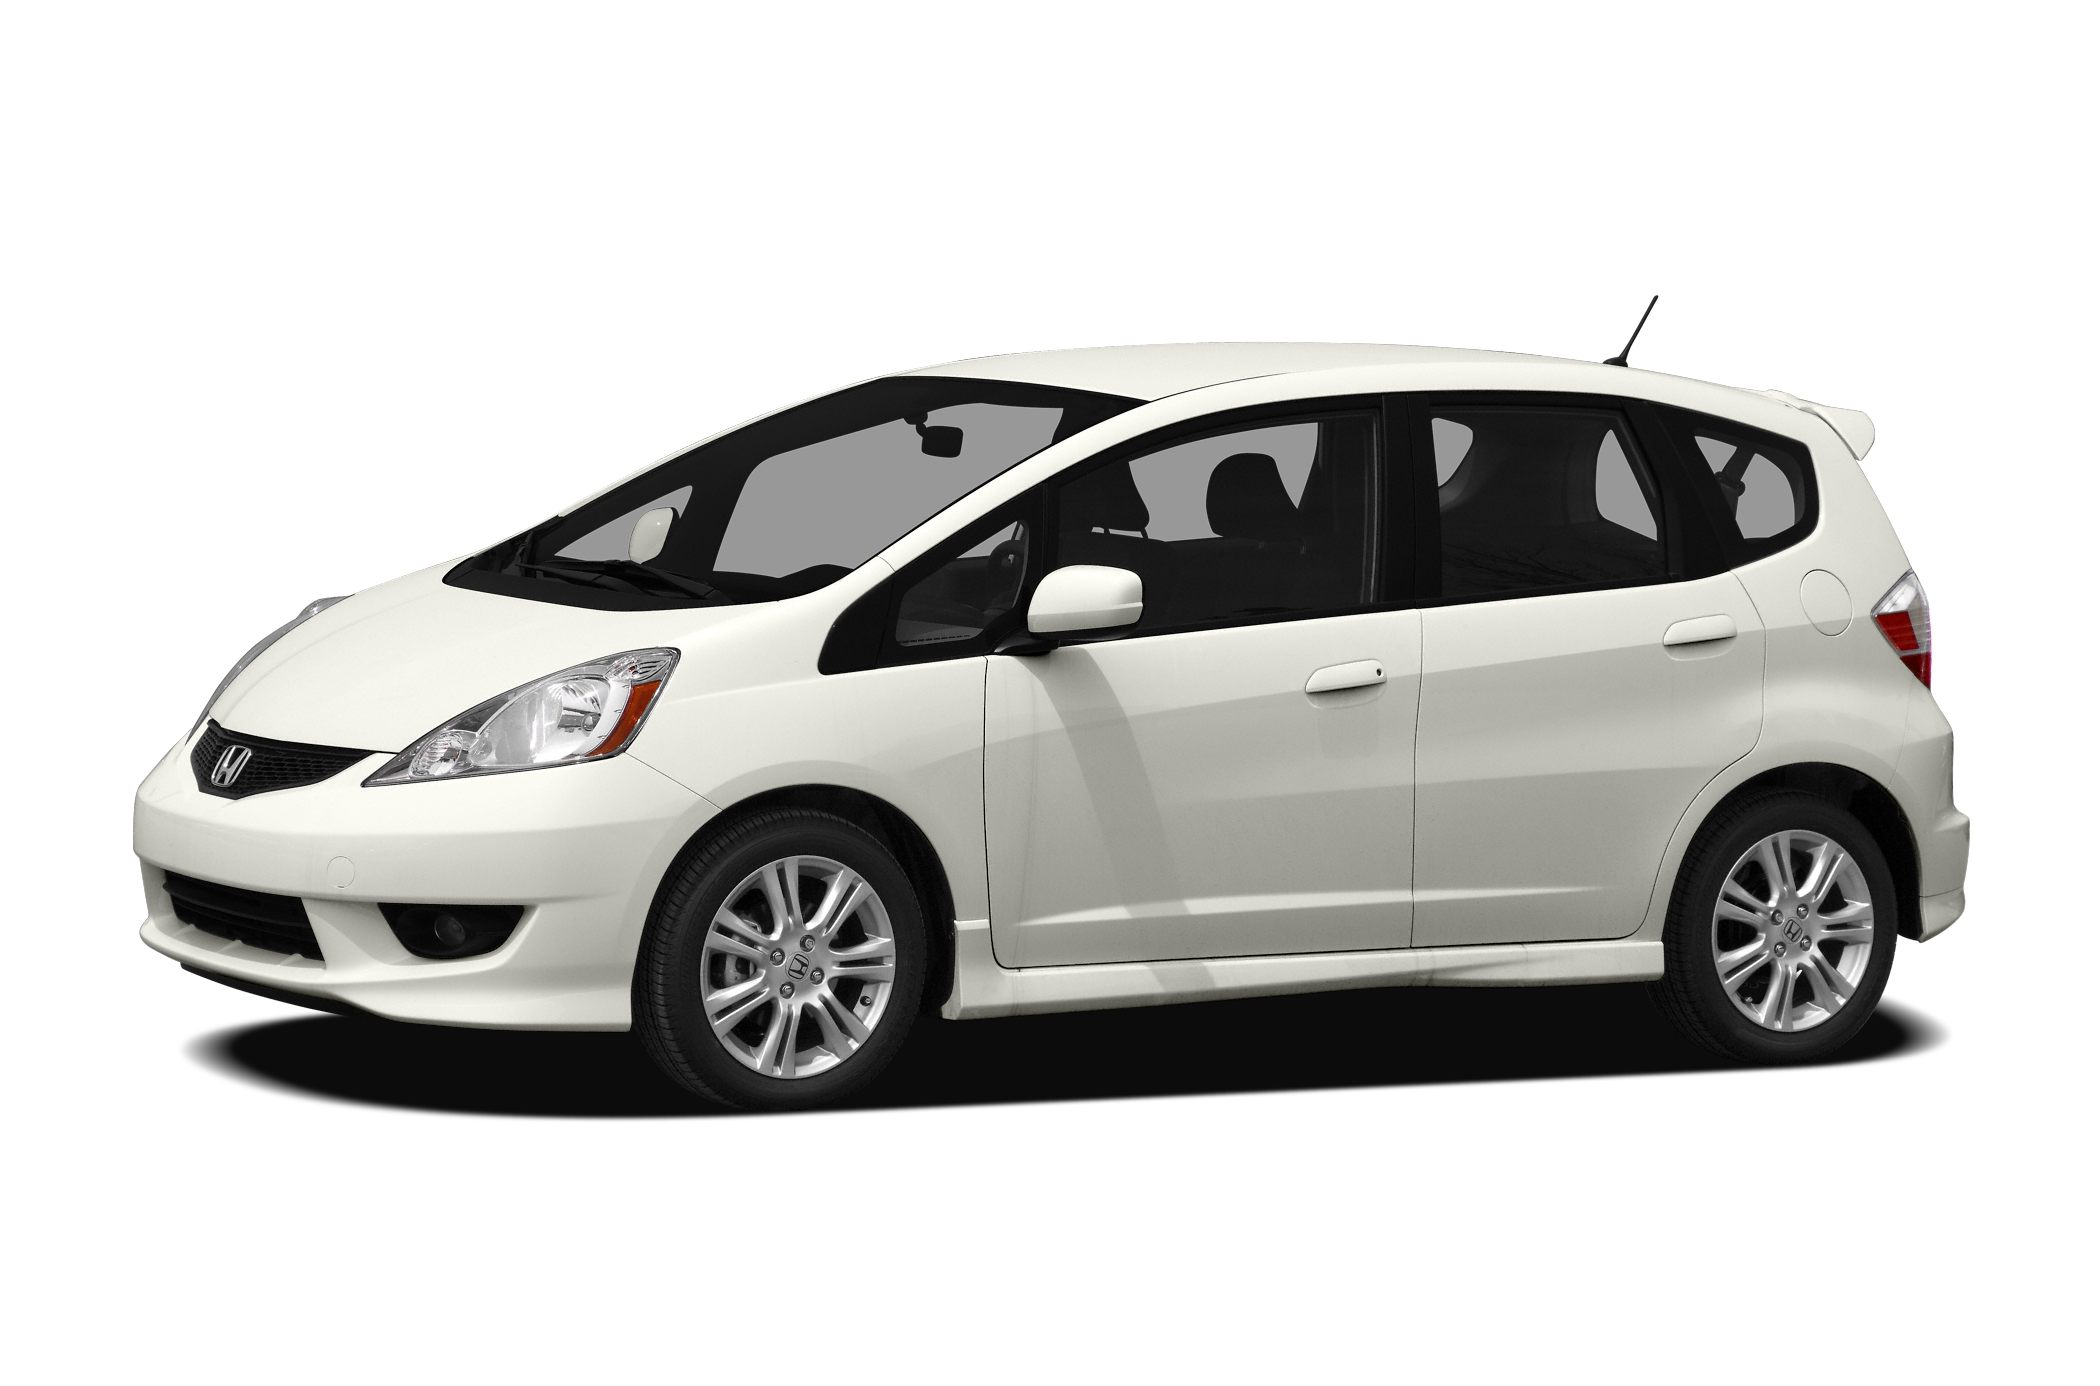 2009 Honda Fit Sport Hatchback for sale in Escondido for $12,997 with 45,546 miles.